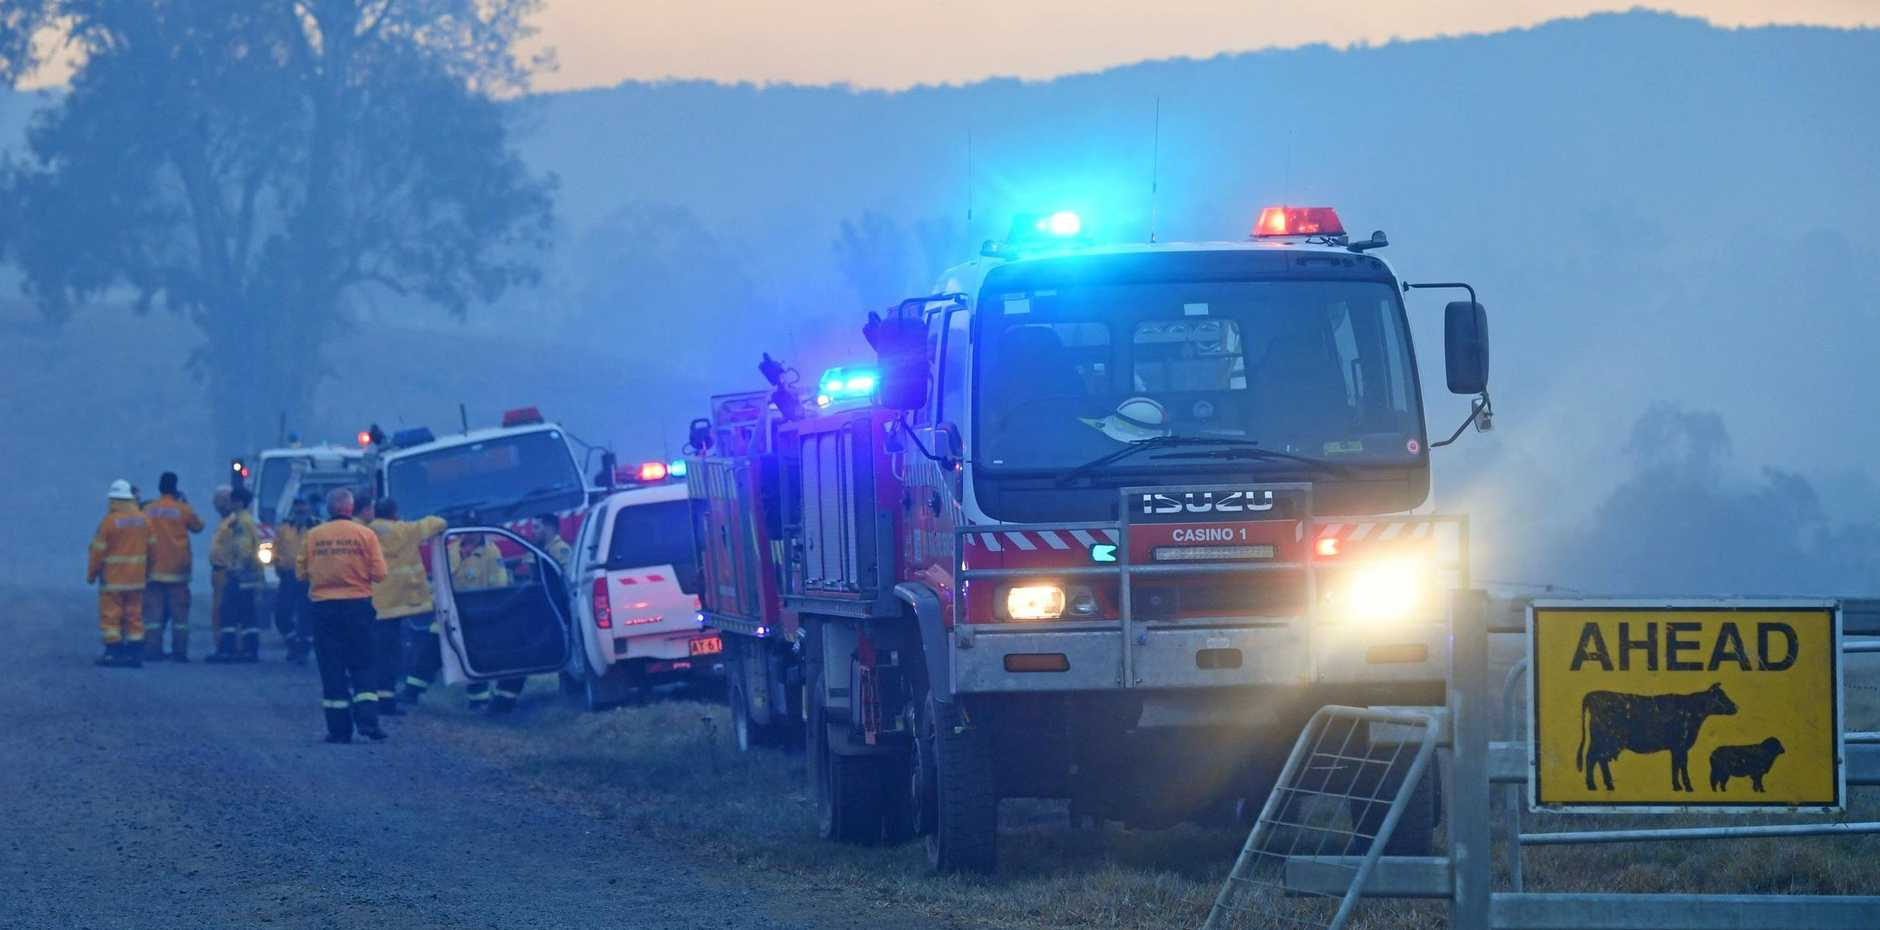 Fire Fighters at the staging point for where they were fighting the blaze at Tabulam.